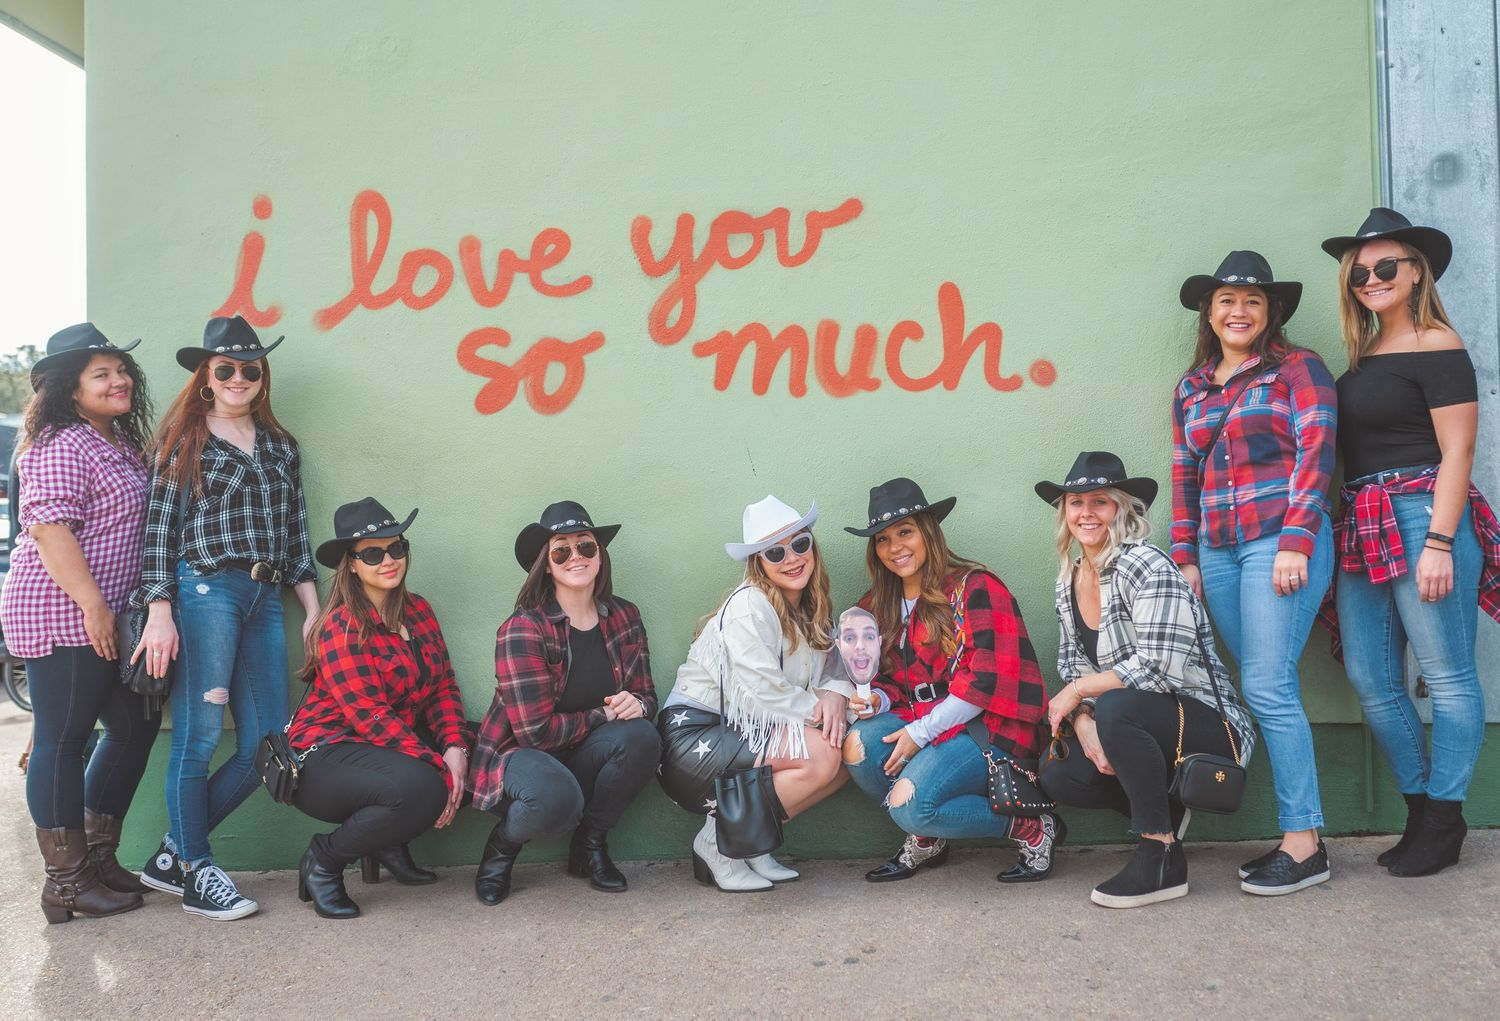 First bachelorette party at the I LOVE YOU SO MUCH Mural in Austin, Texas